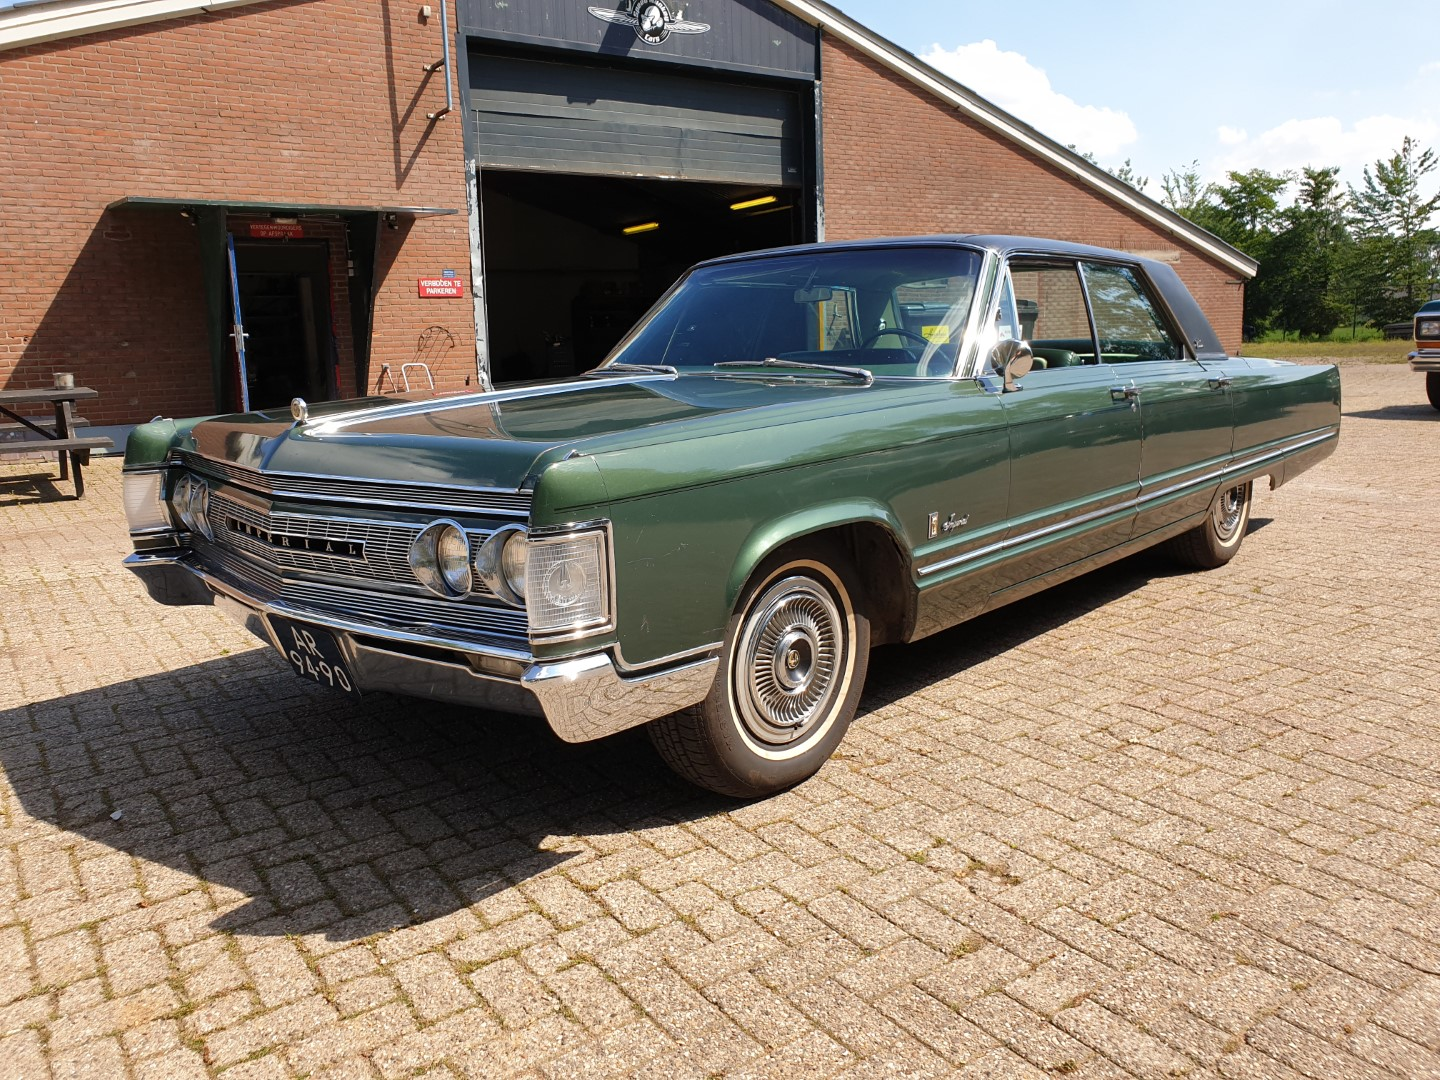 1967 Chrysler Imperial with 440ci V8